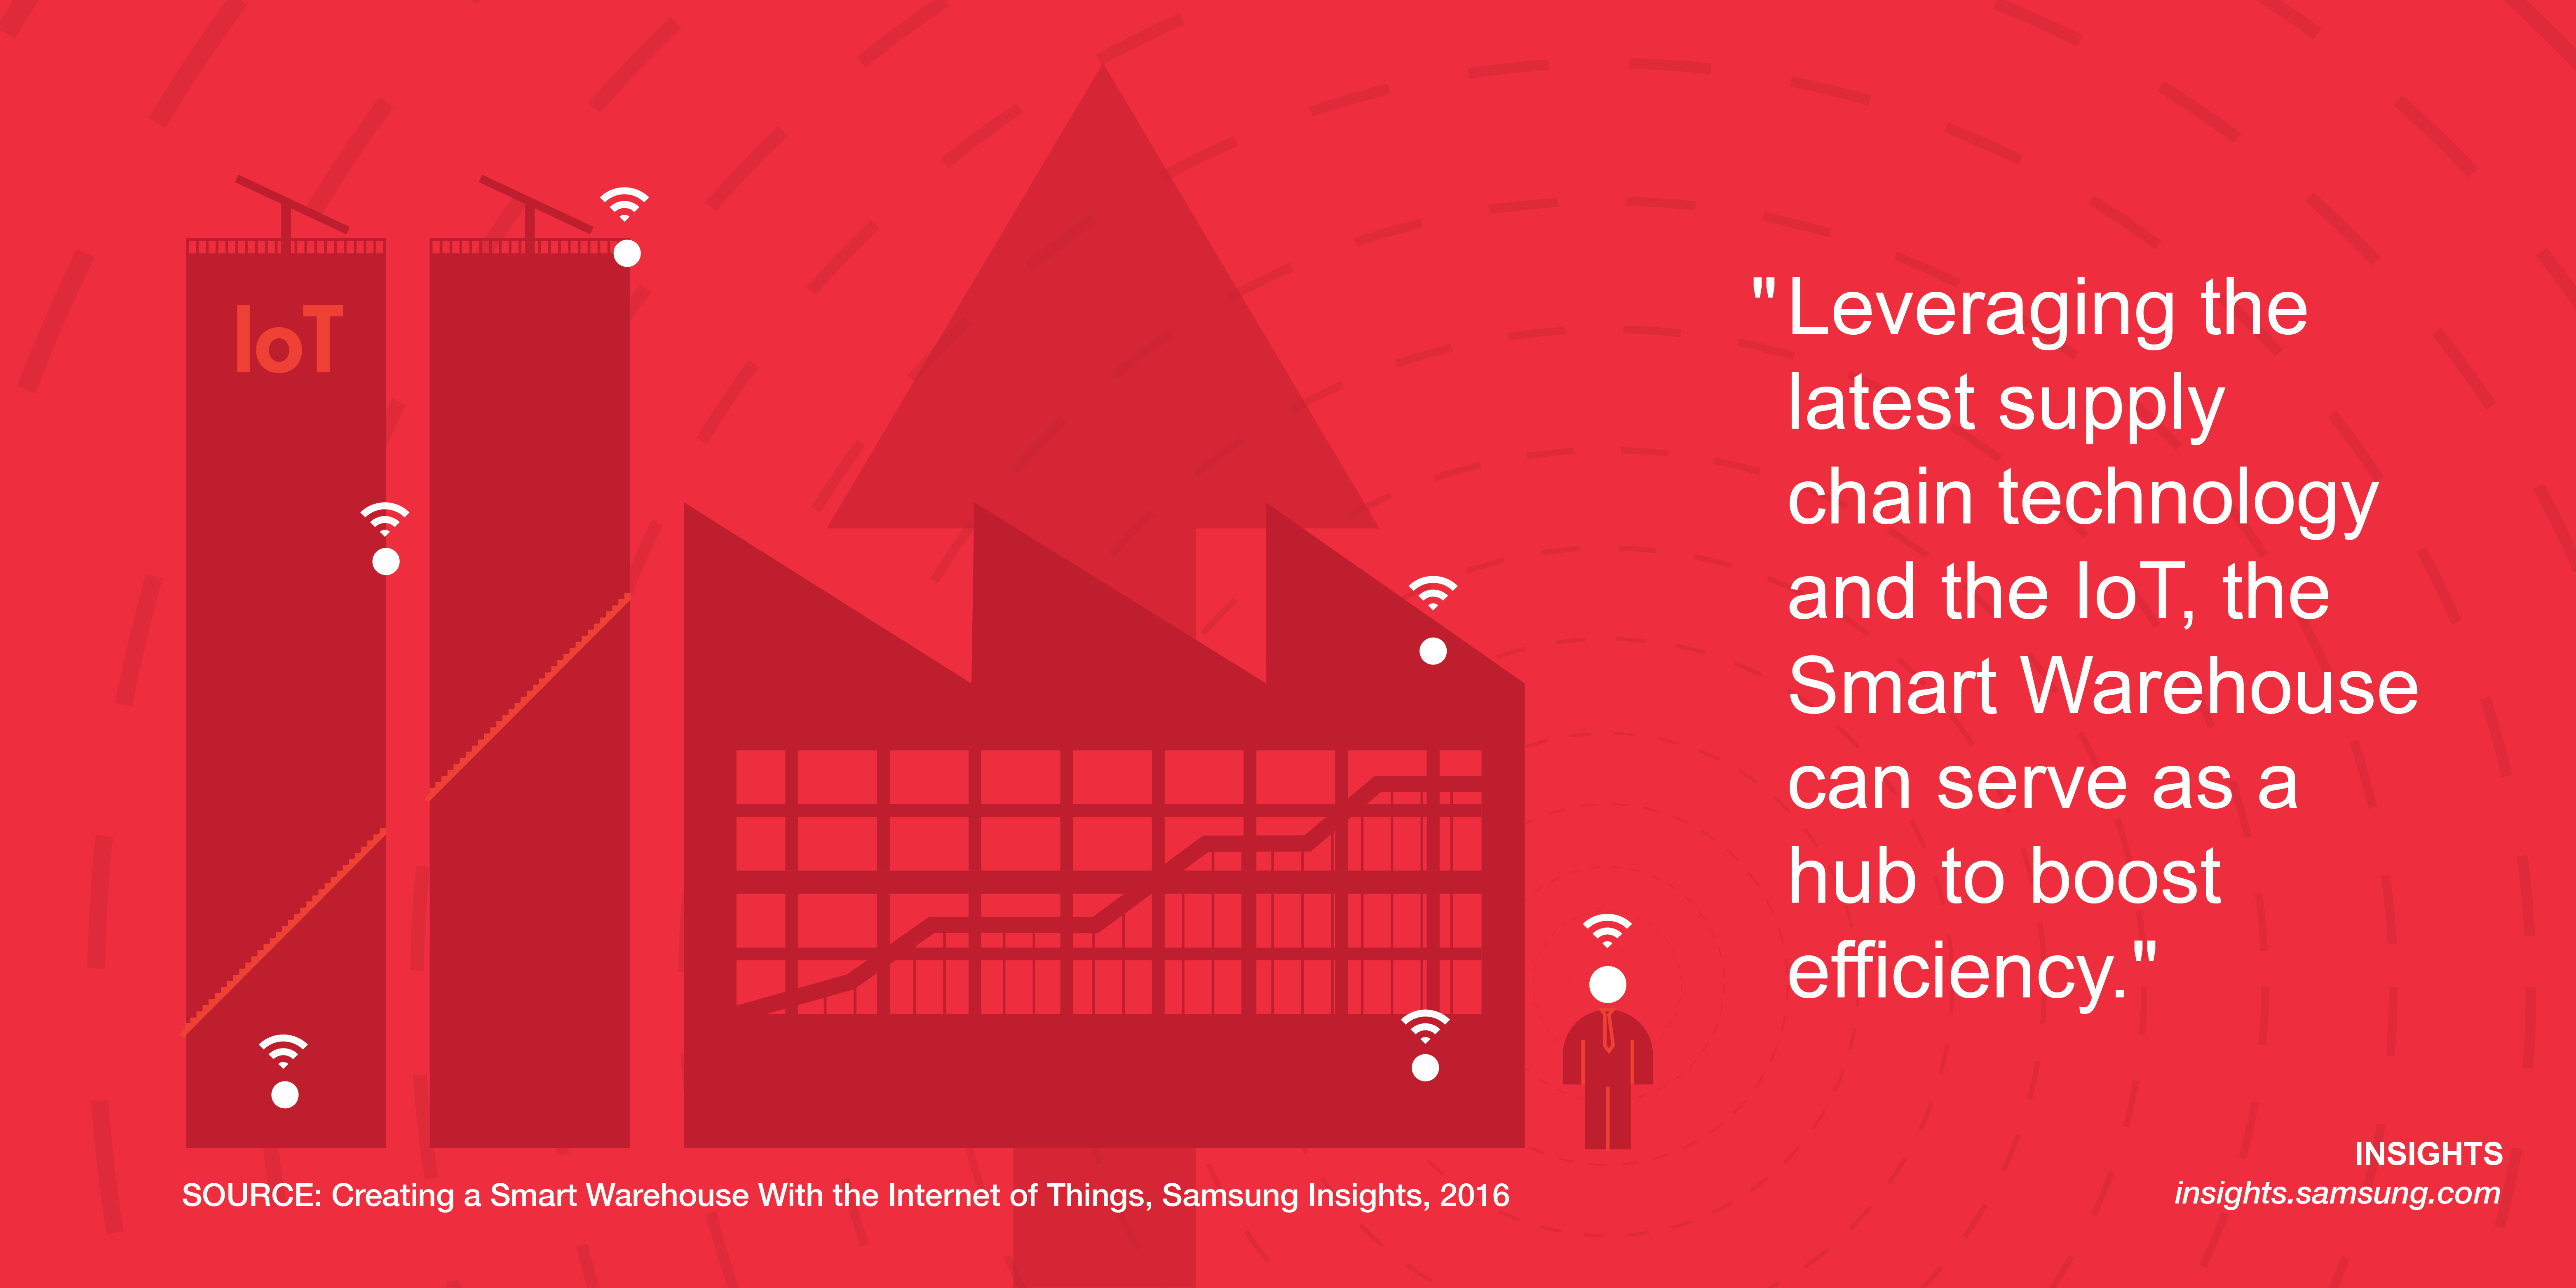 Many retailers are using IoT and the latest supply chain technology to create a smart warehouse.